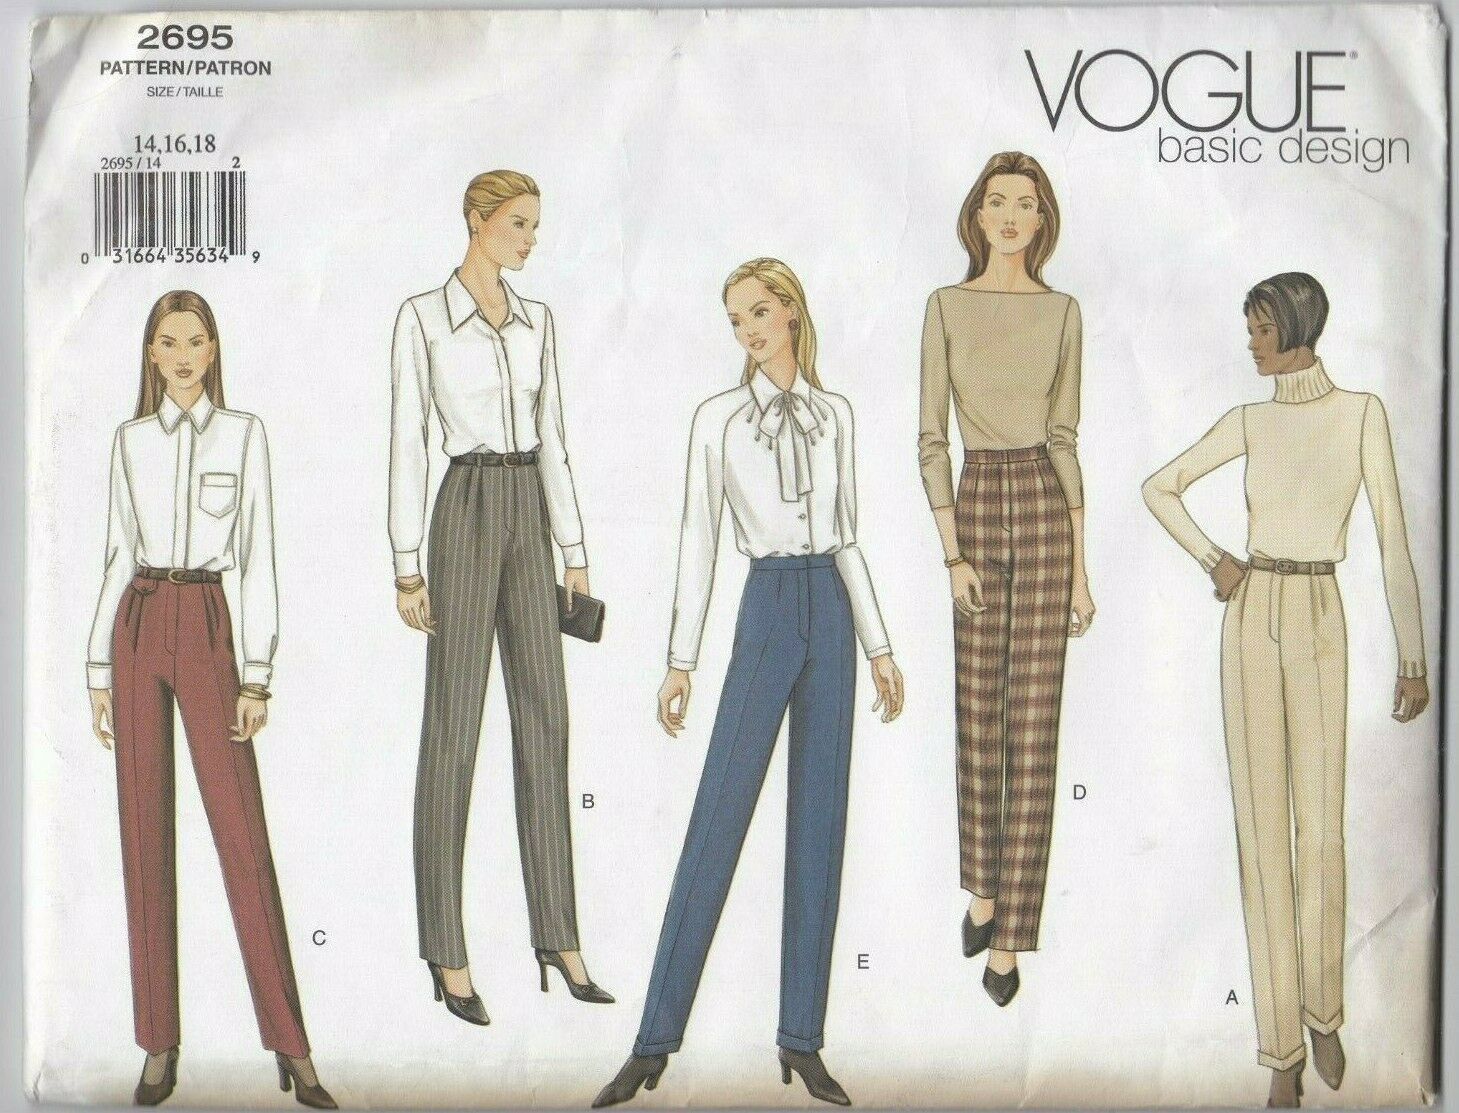 Primary image for Vogue Basic Design 2695 Women's Pants or Trousers 14-16-18 Uncut Sewing Pattern